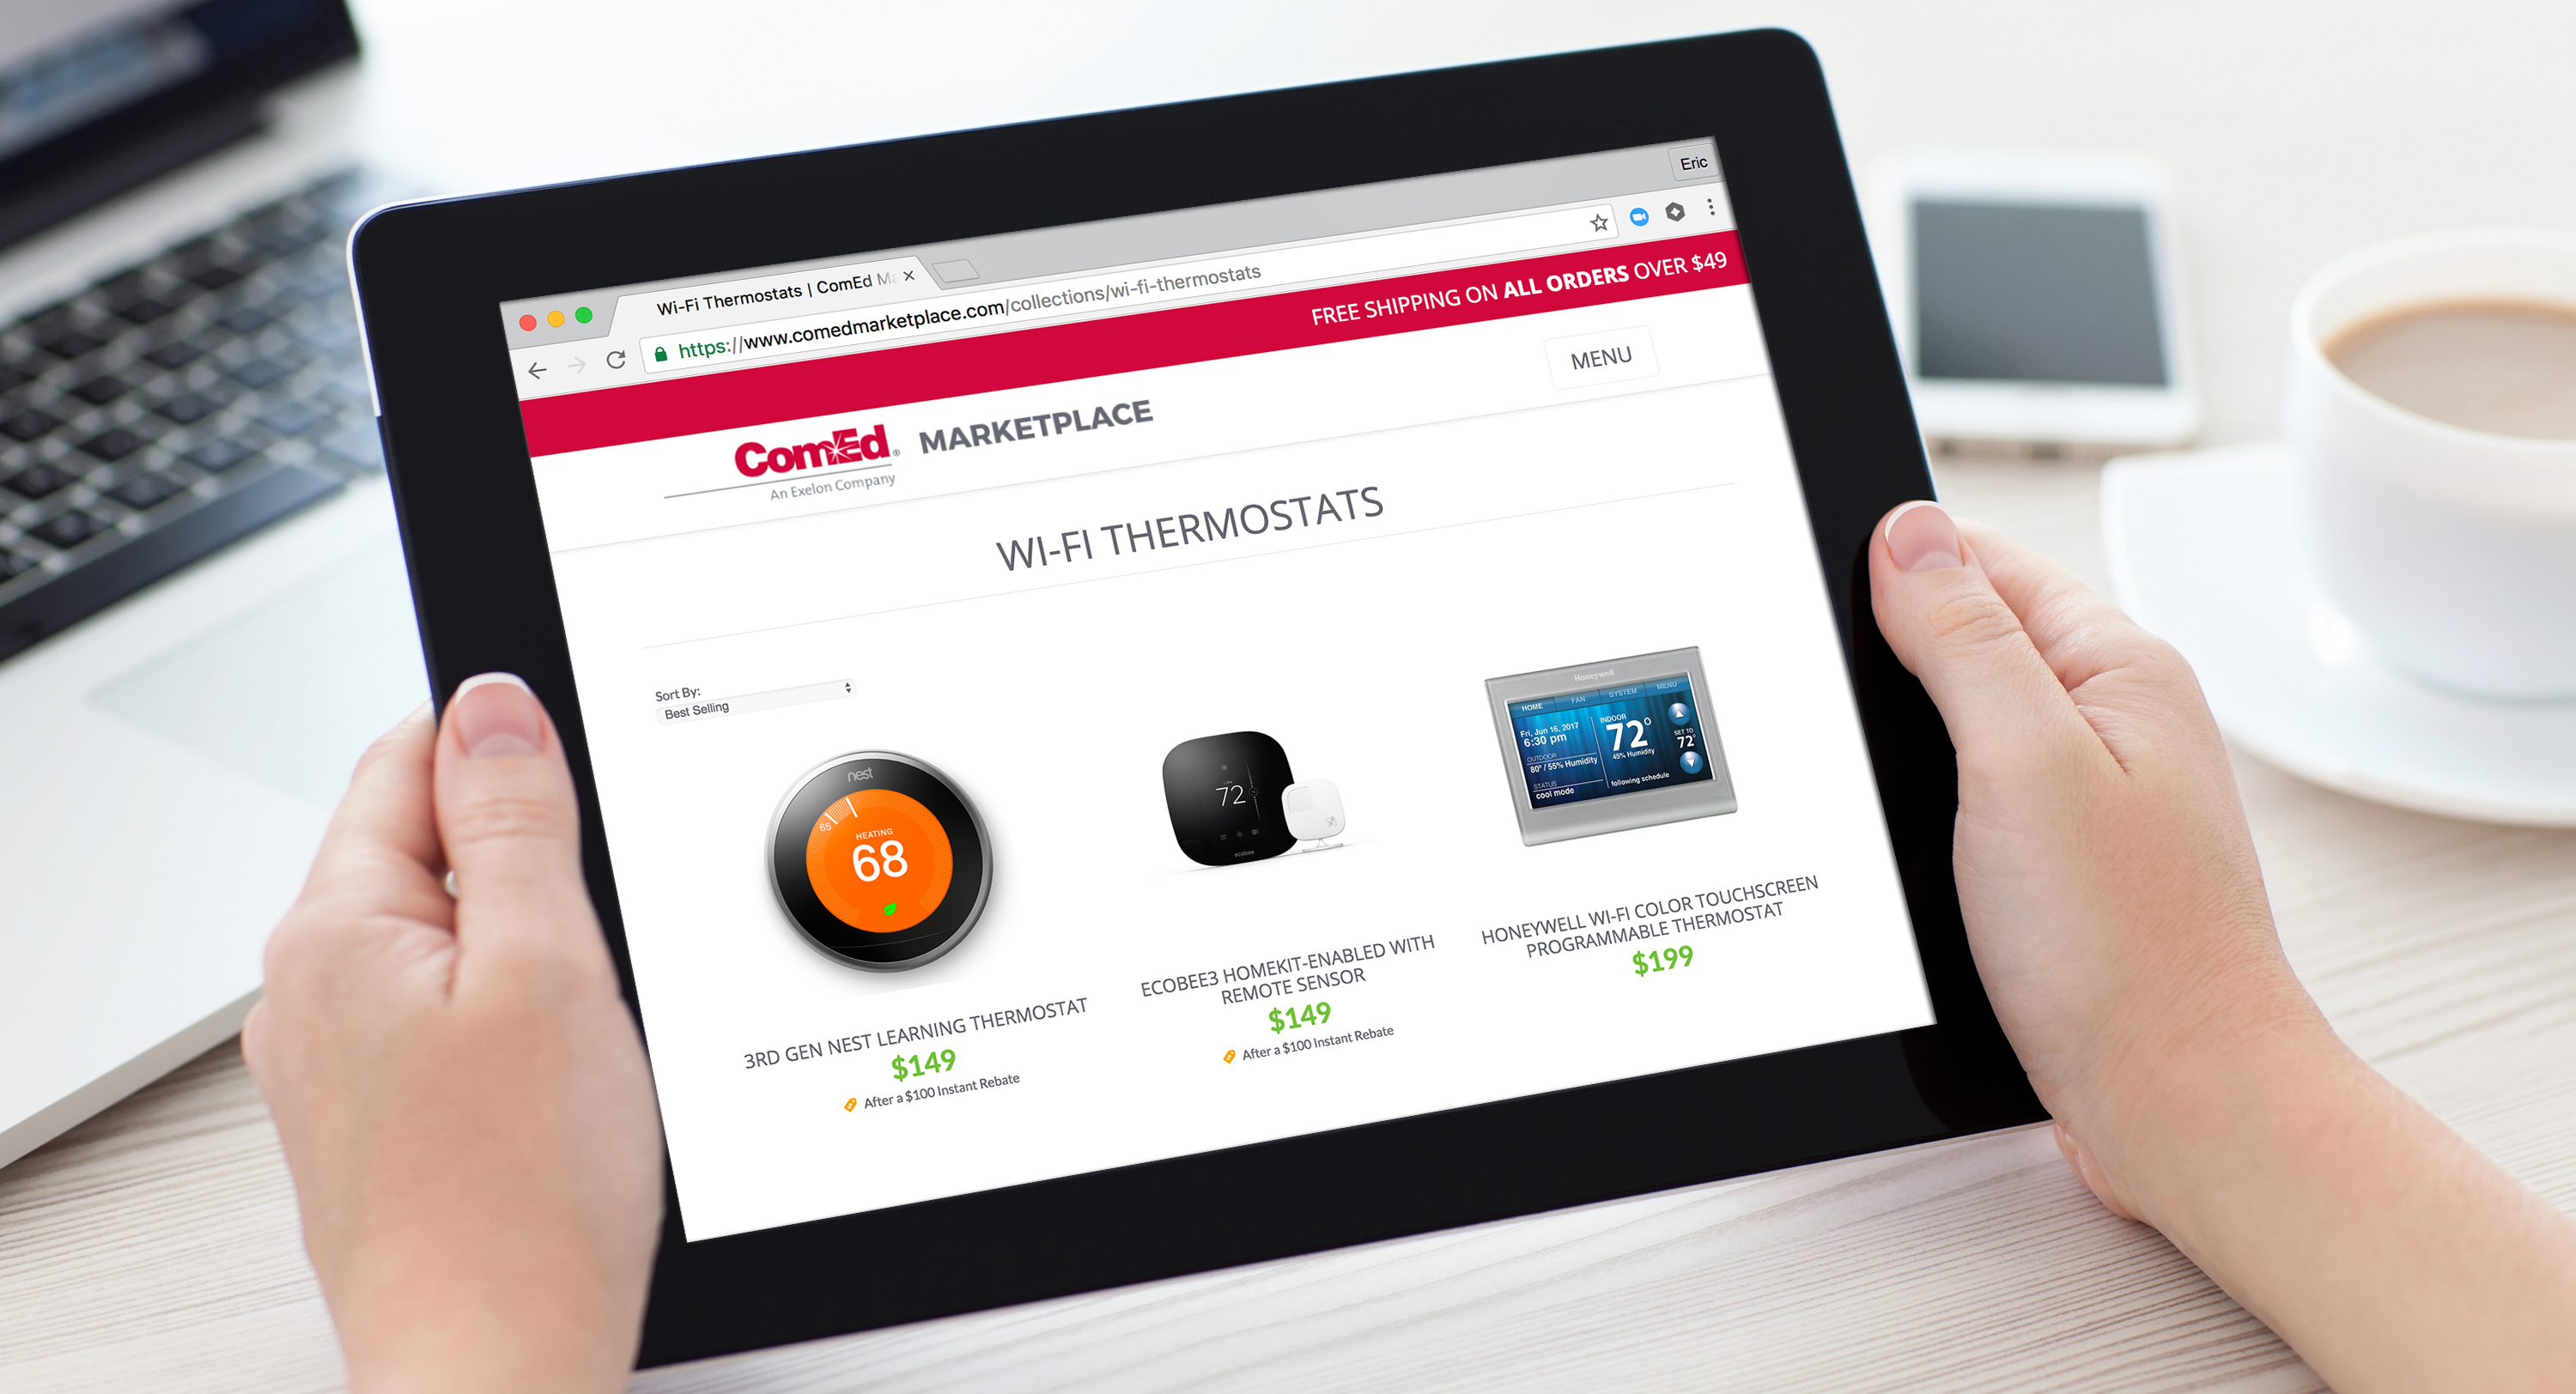 Experience the ComEd Marketplace